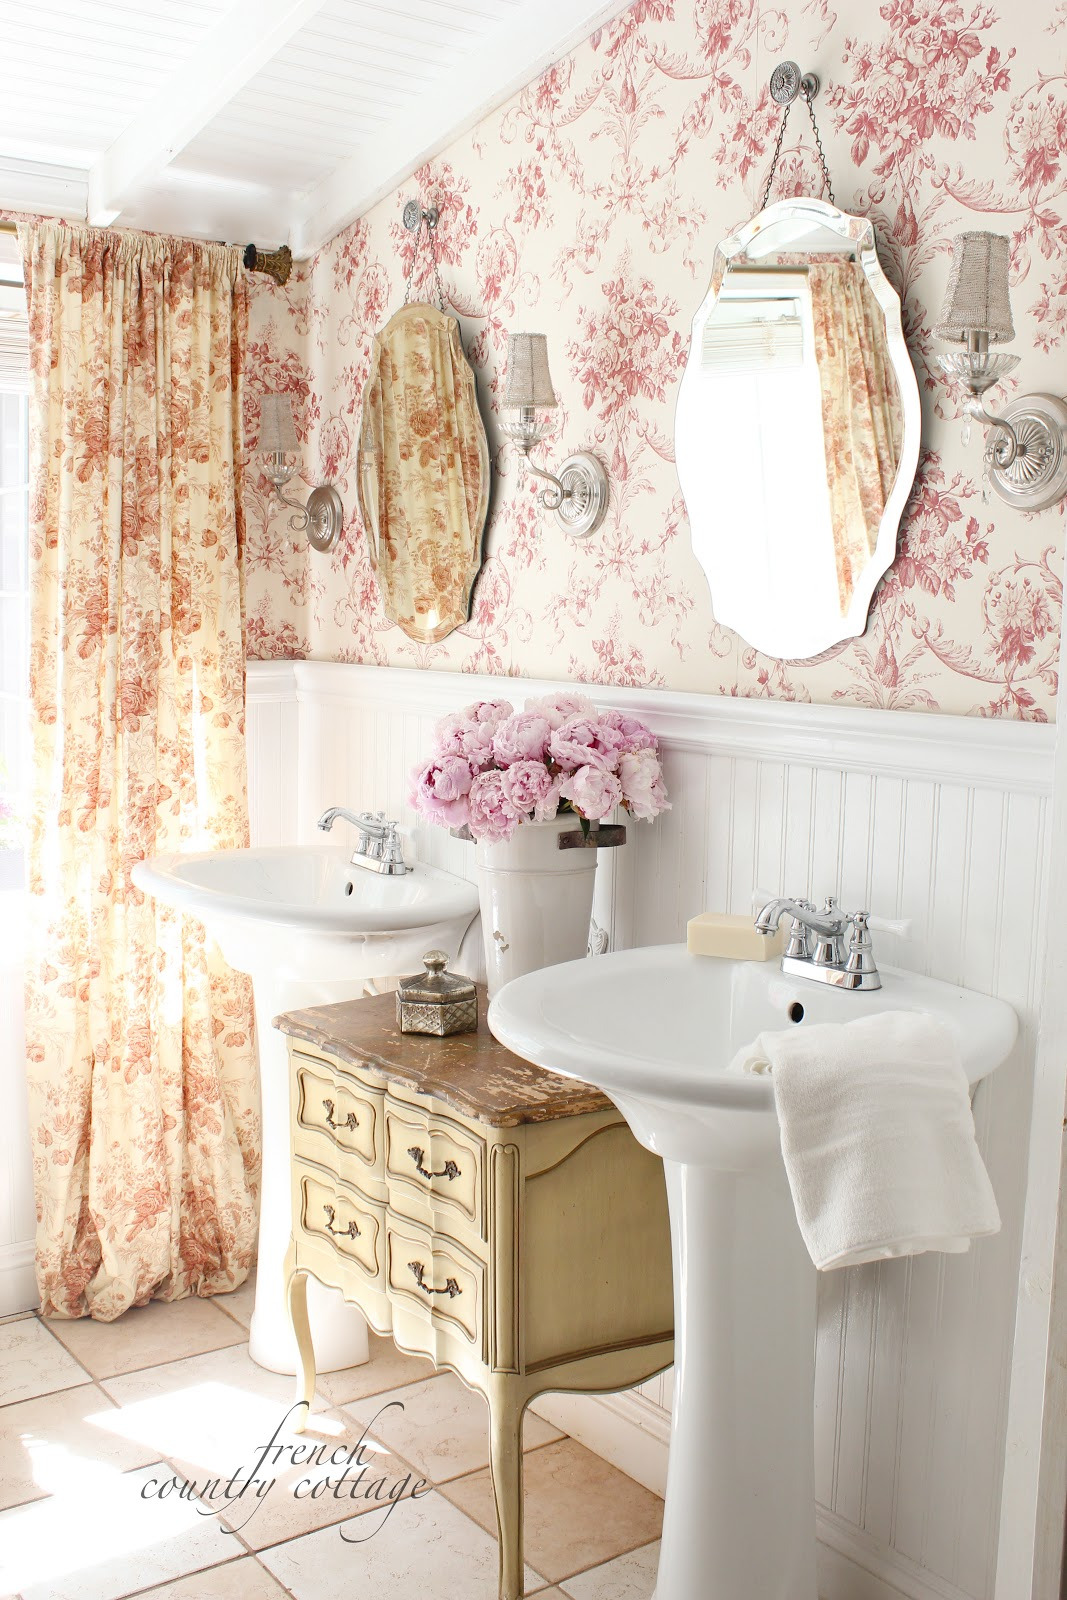 Country French Bathroom Decor Inspirational Small Country Bathroom Ideas Home Decor French Country